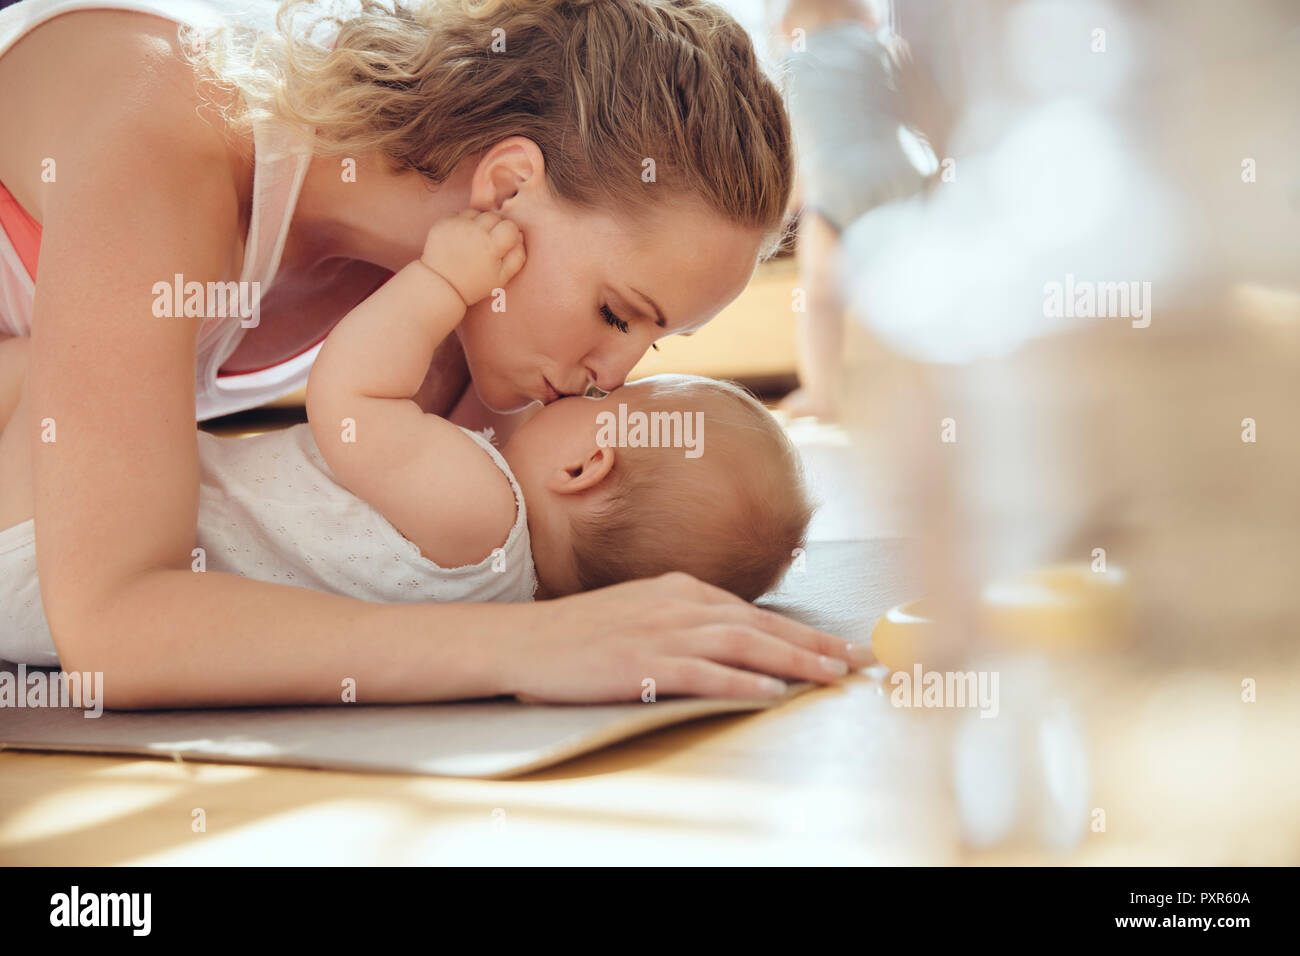 Mother kissing her baby while working out on a yoga mat Stock Photo